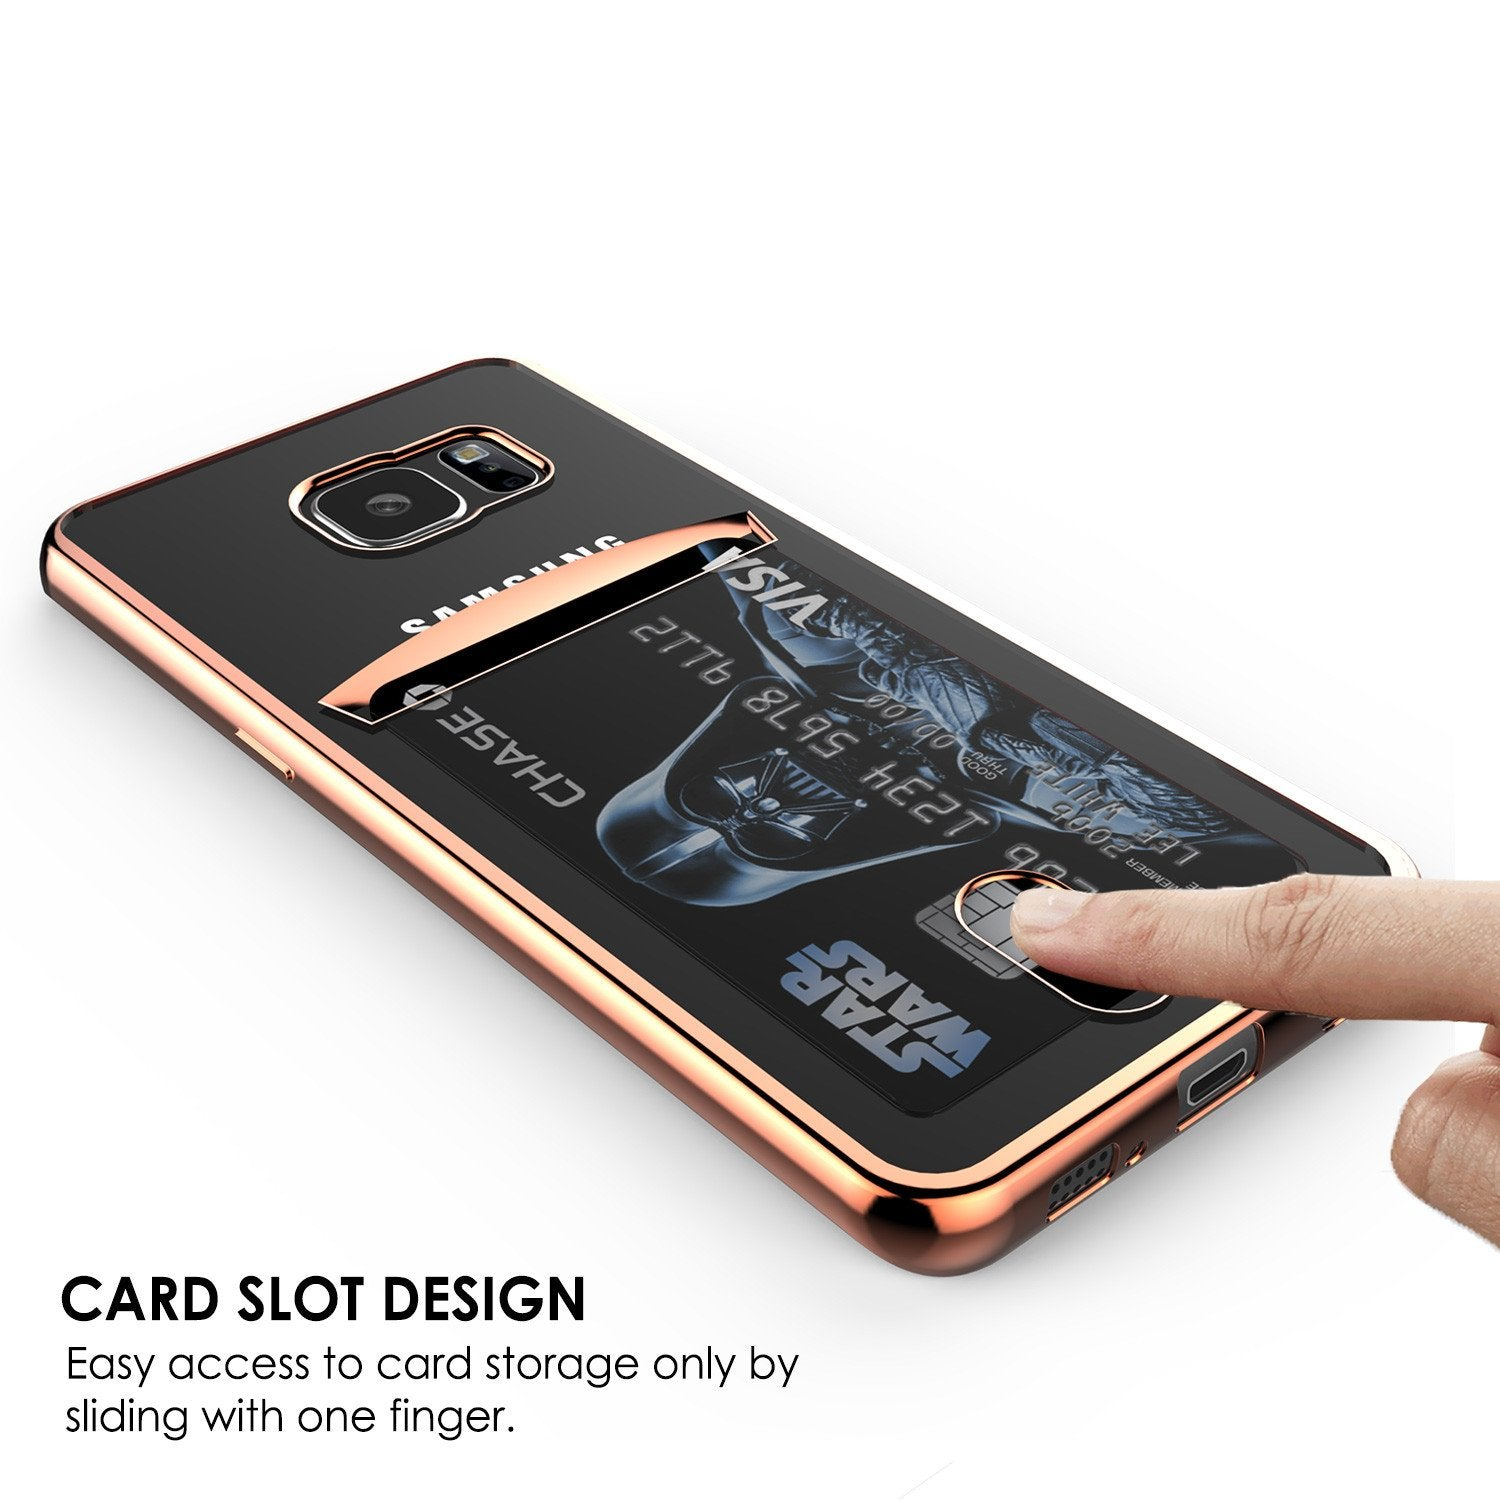 Galaxy S6 EDGE Case, PUNKCASE® LUCID Rose Gold Series | Card Slot | SHIELD Screen Protector - PunkCase NZ